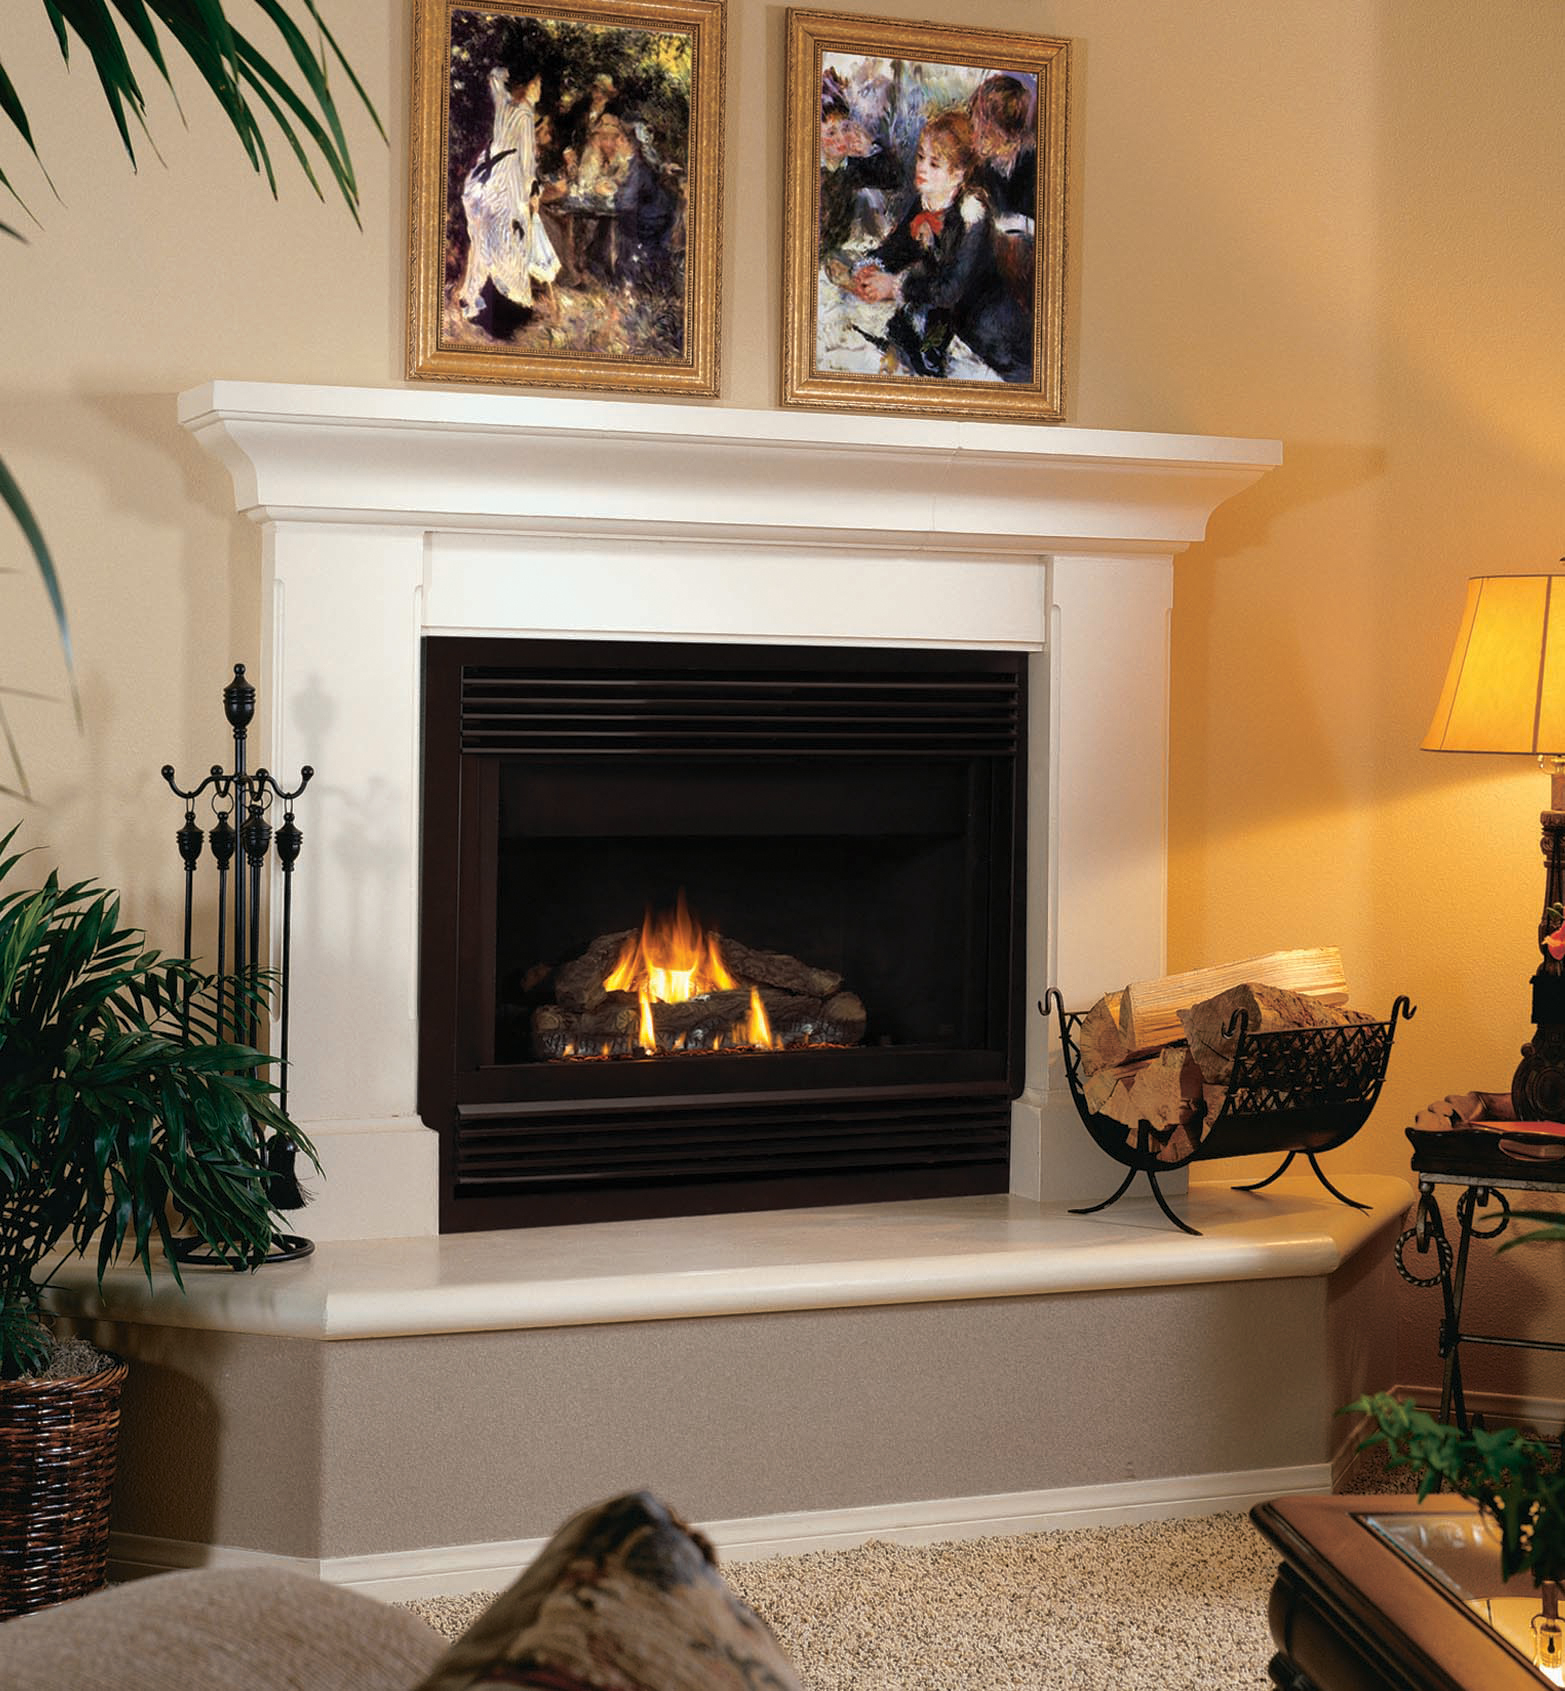 Fireplace designs ideas homesfeed for Home fireplace designs